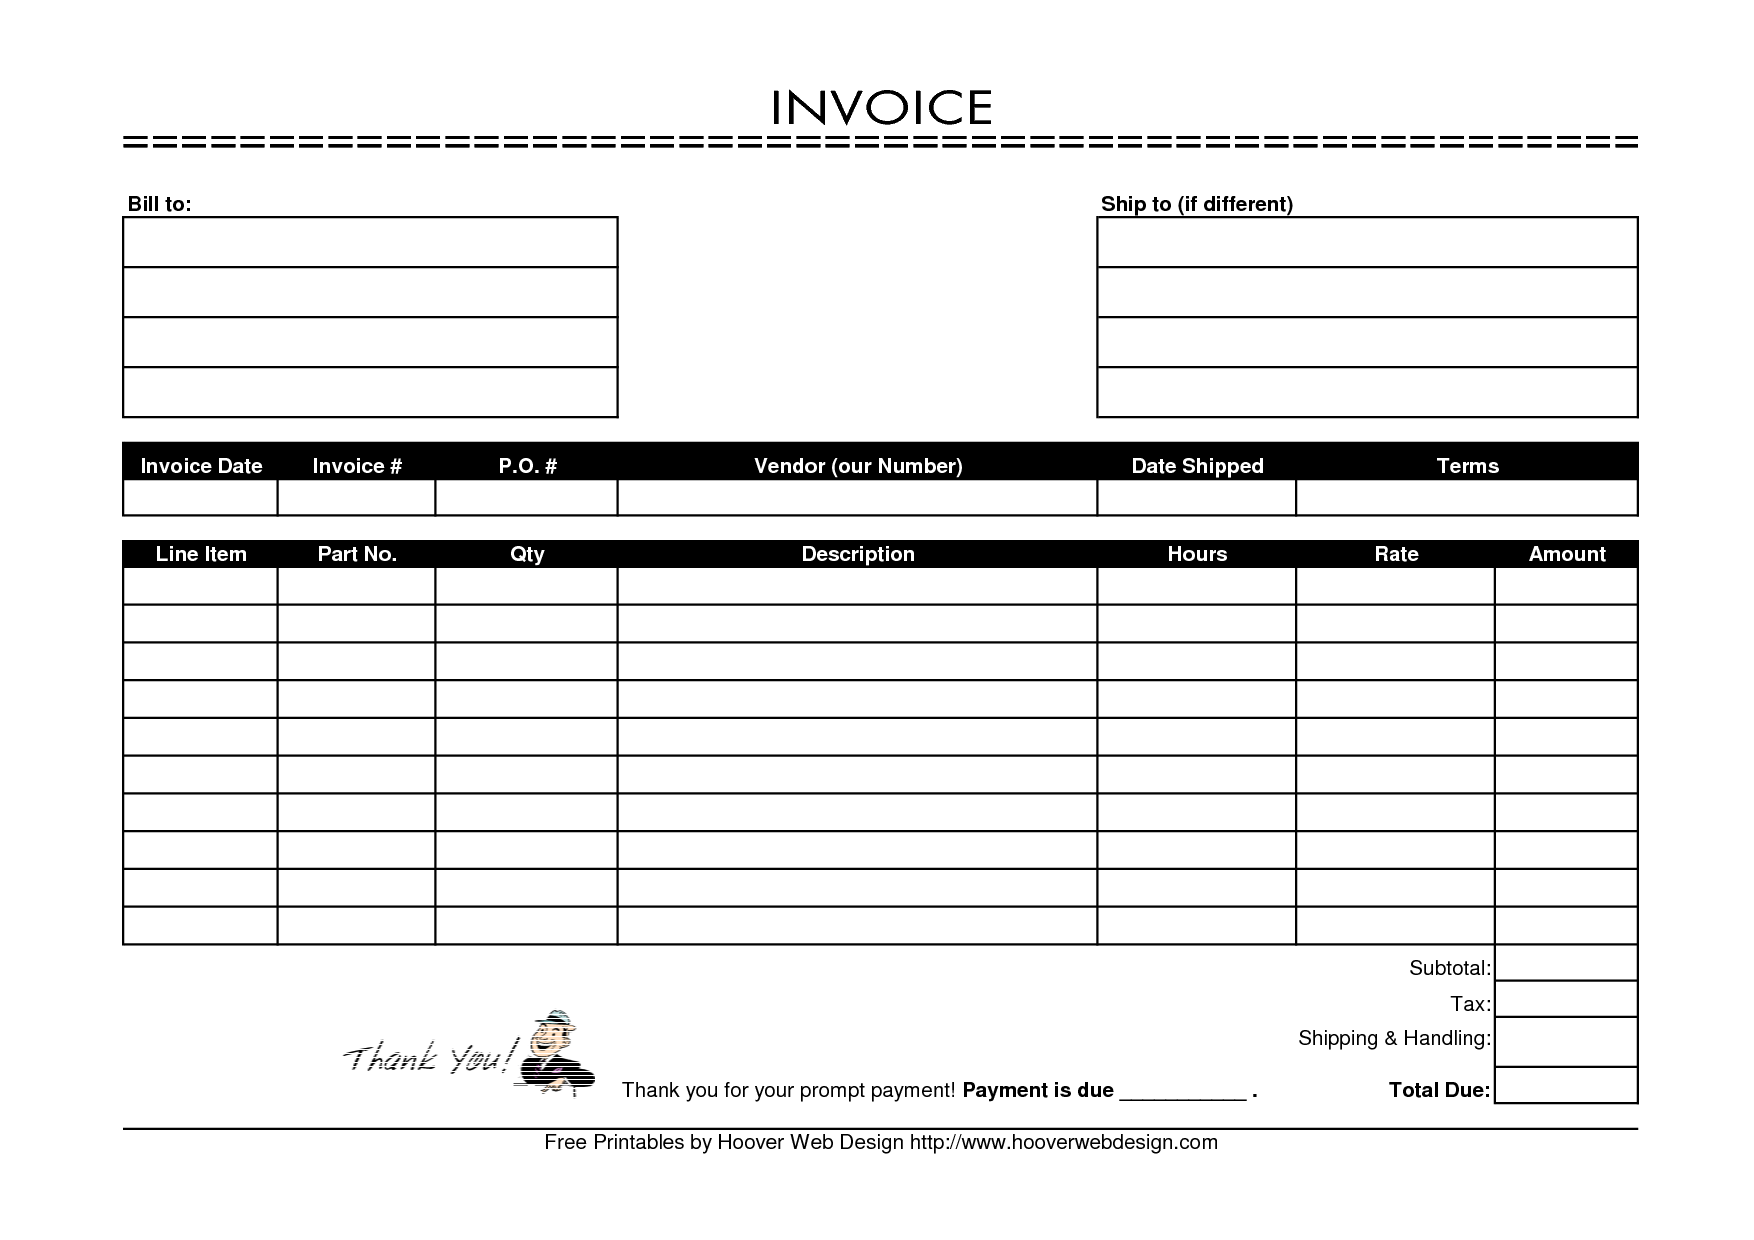 Body Shop Invoice Template and Free Invoice software Small Business